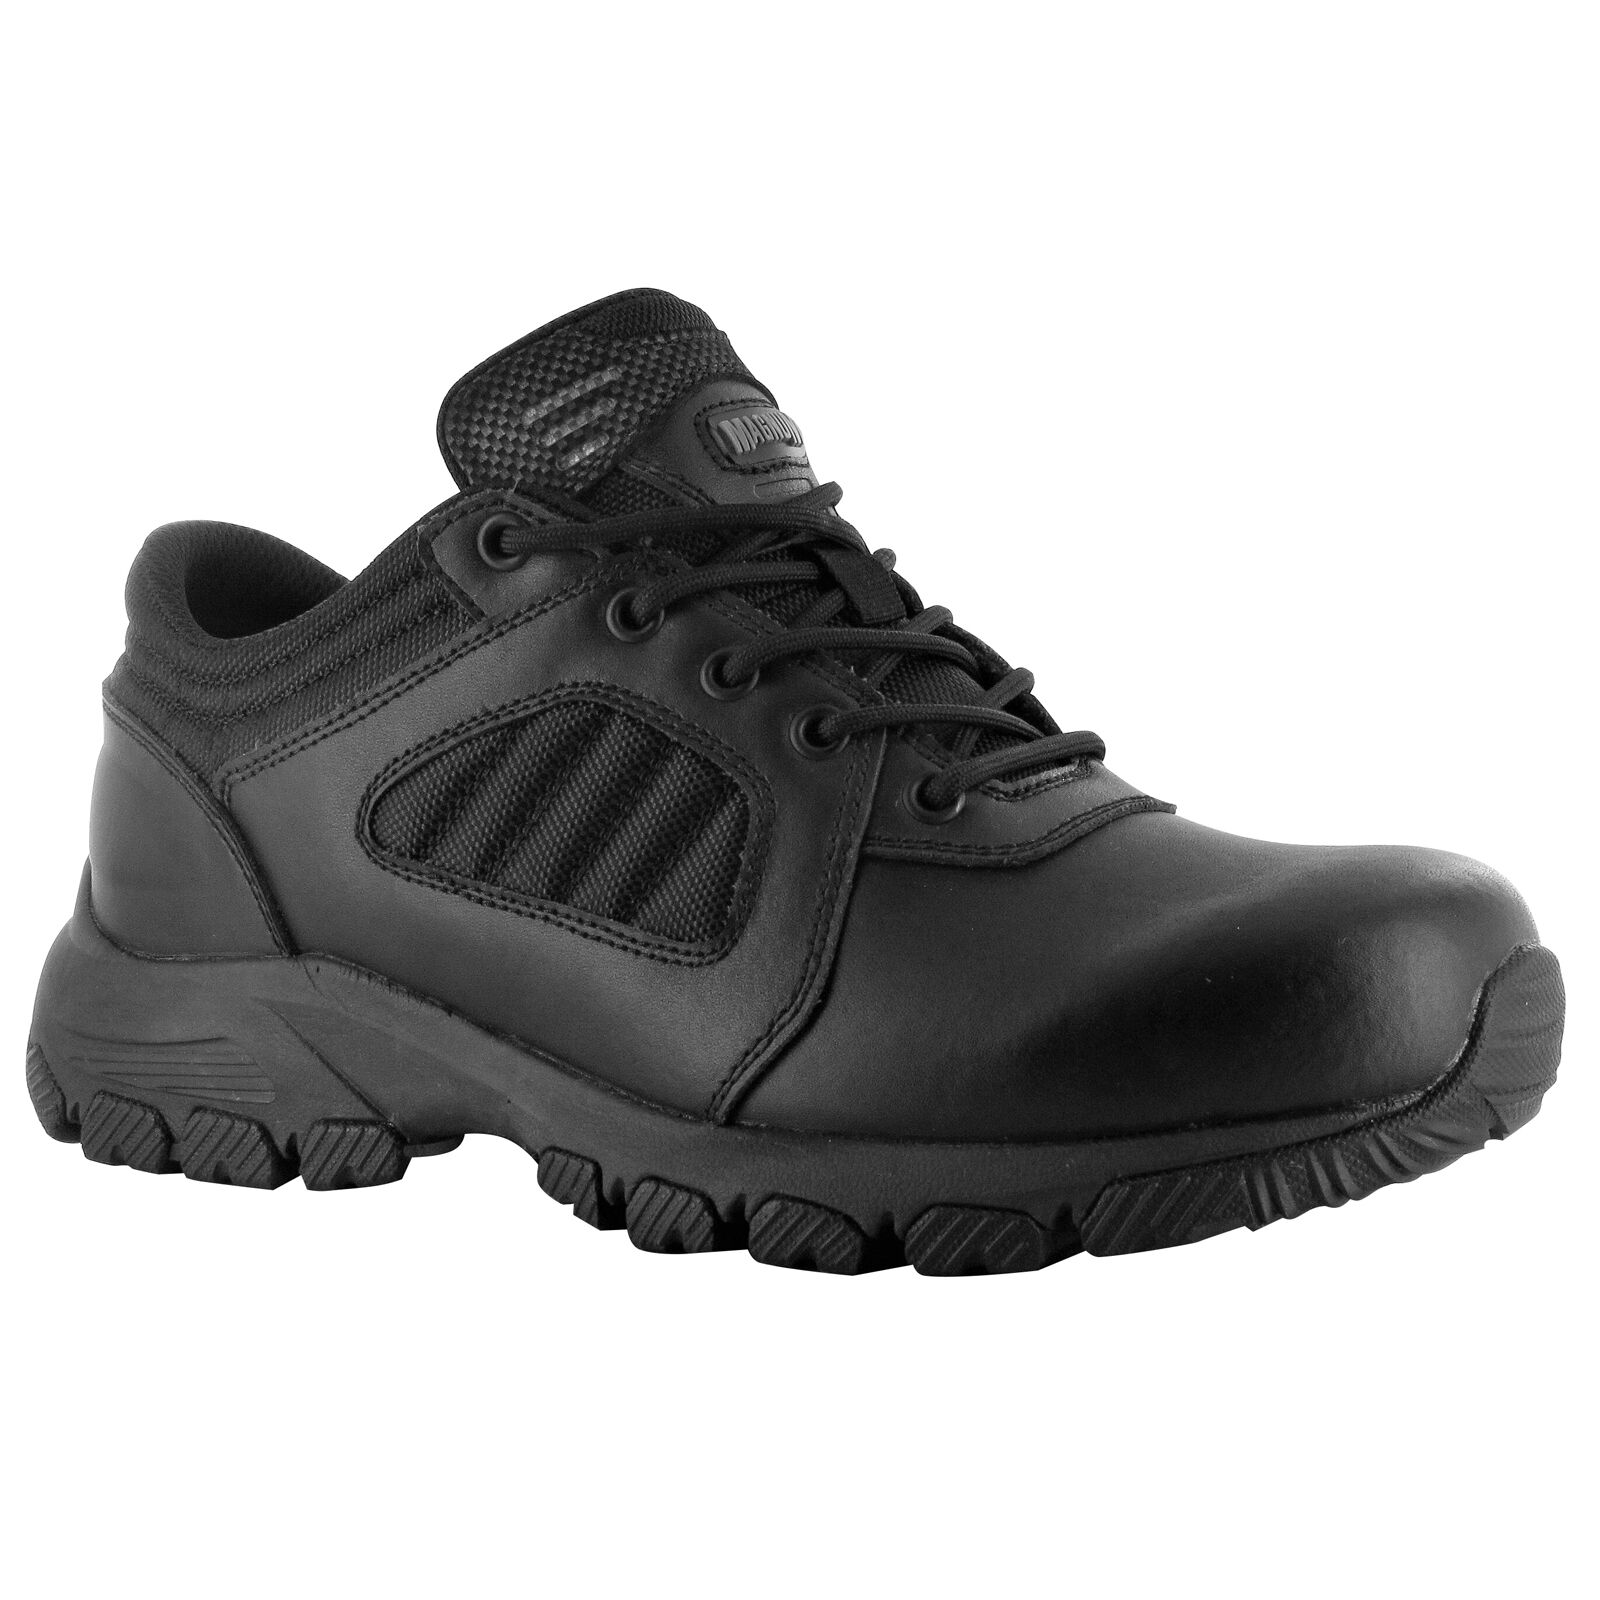 HI-TEC - Magnum Lynx 3.0 Black Schuhe Herren Boots Ranger Security Polizei Paint